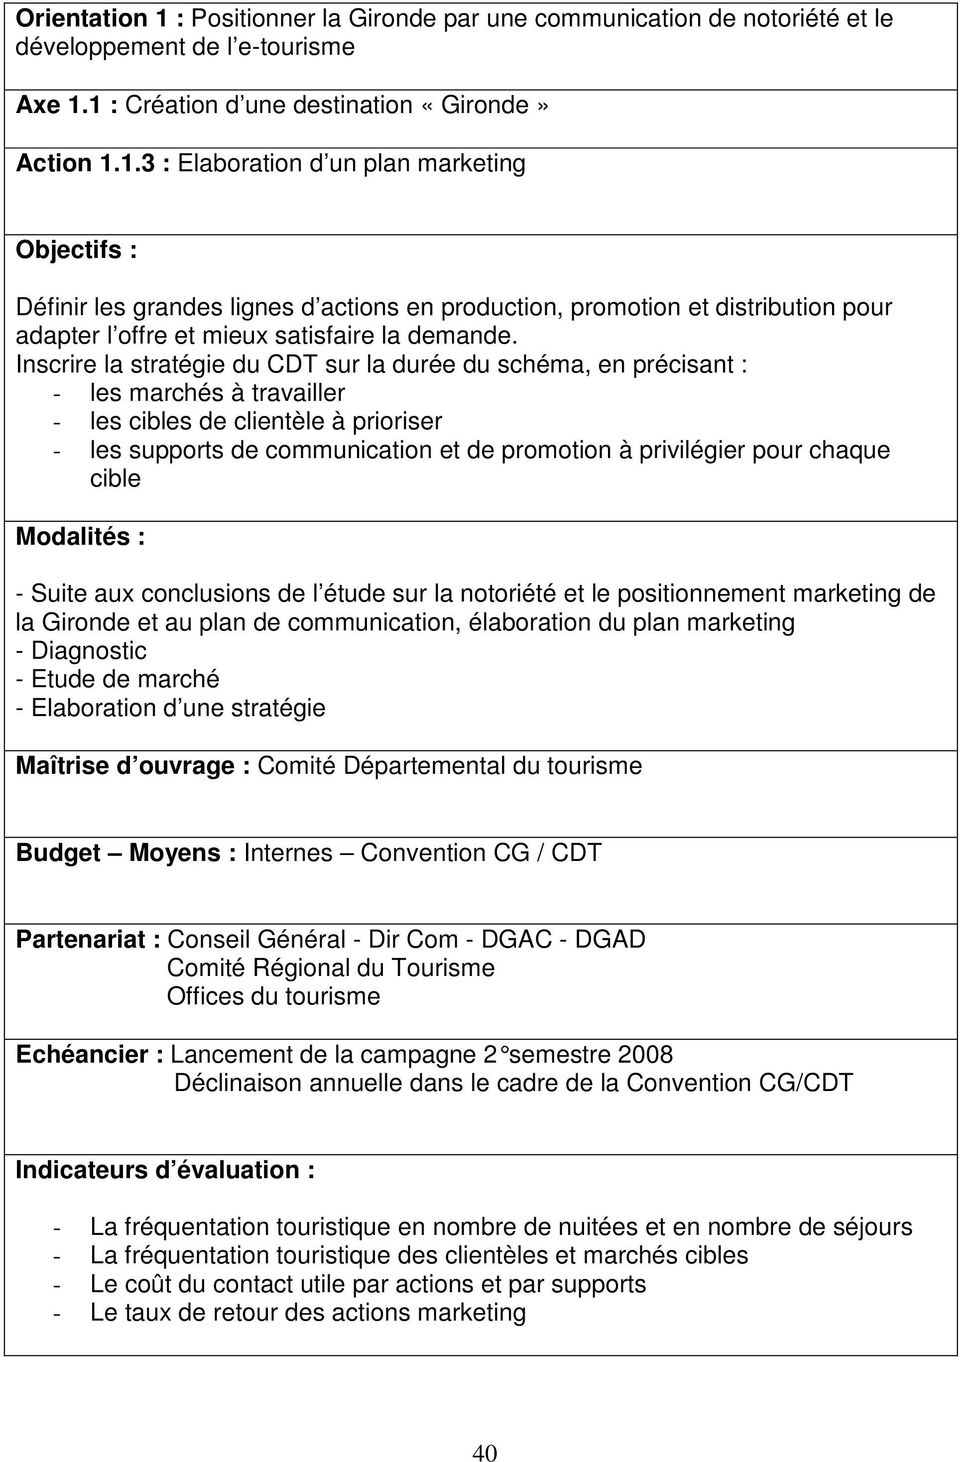 chaque cible - Suite aux conclusions de l étude sur la notoriété et le positionnement marketing de la Gironde et au plan de communication, élaboration du plan marketing - Diagnostic - Etude de marché